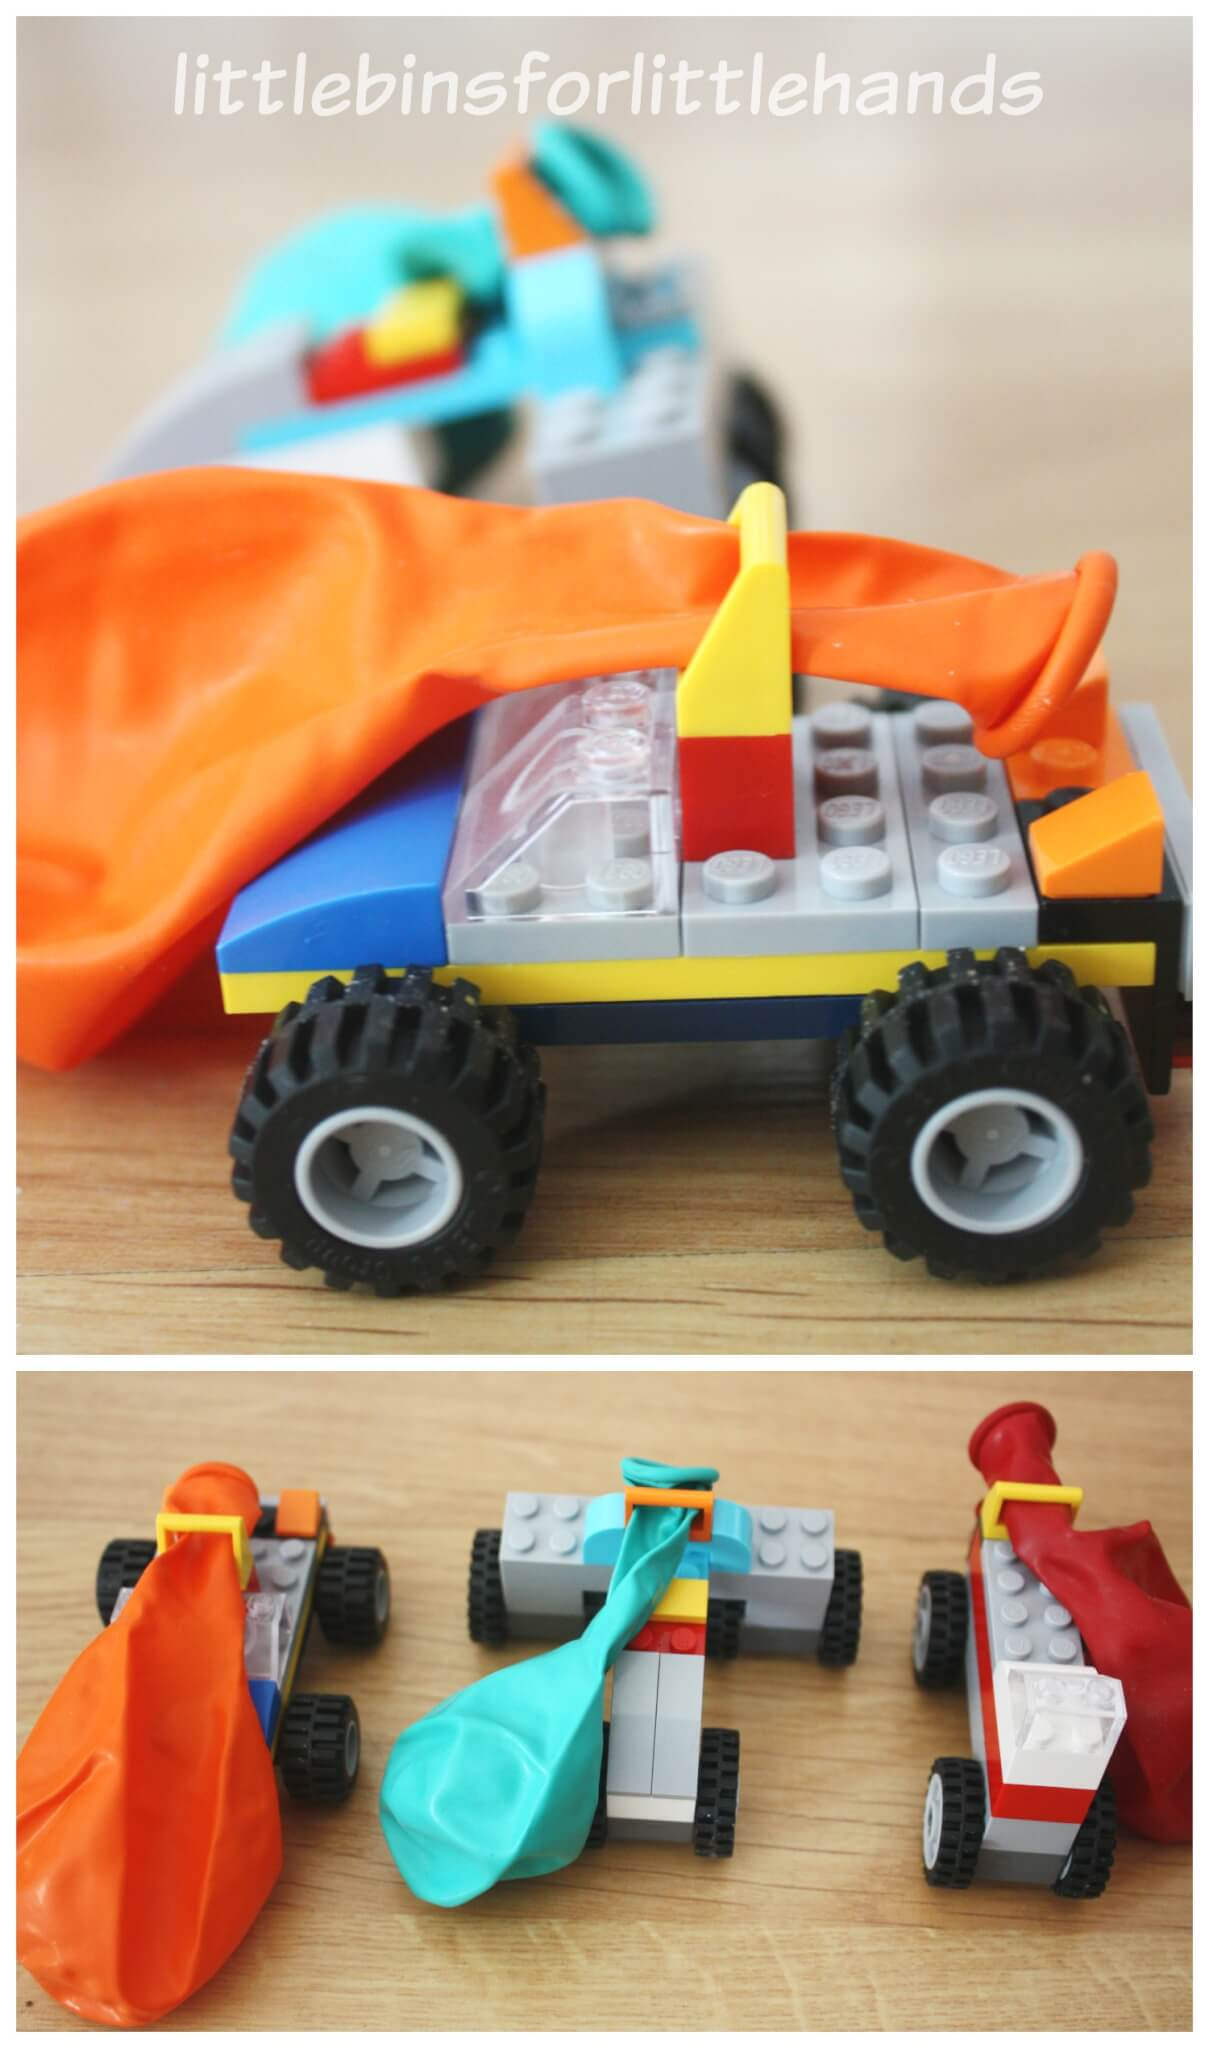 Lego Crafts, Fun Lego Crafts for Kids, Lego Activities, Things to Do With Legos, Fun Things to Do With Legos, Activities for Kids, Educational Activities for Kids, Popular Pin